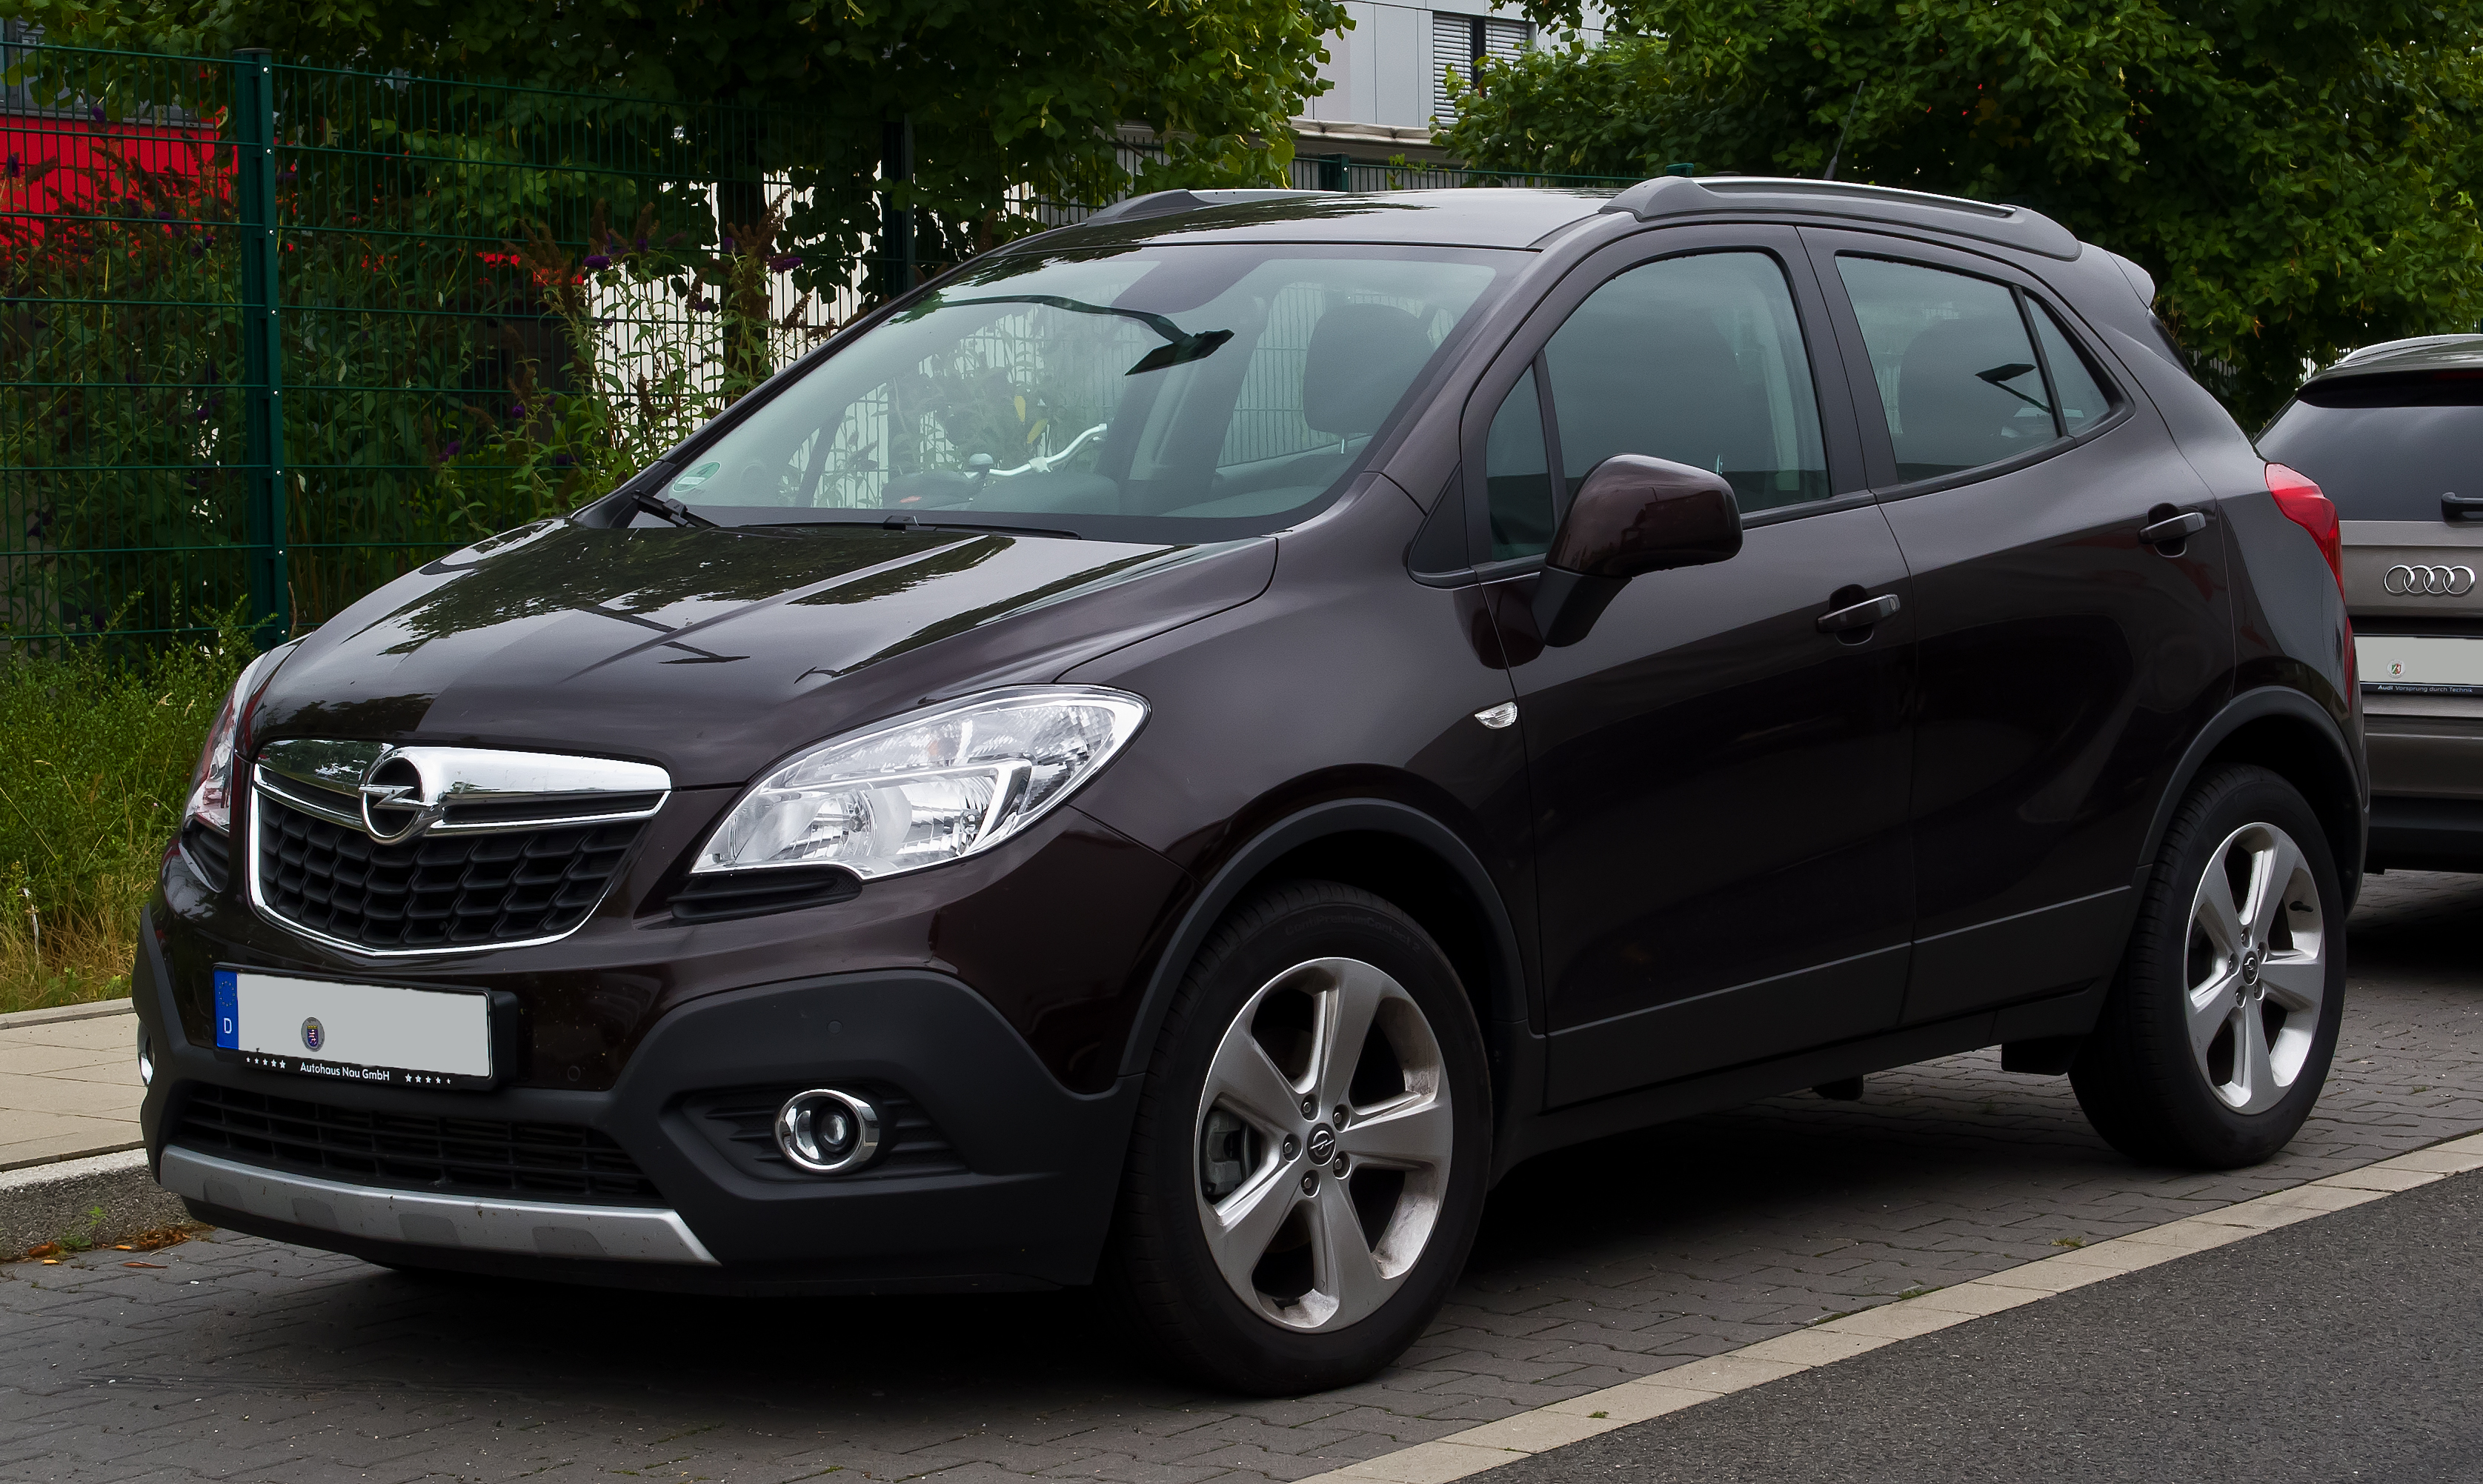 Illustration : OPEL - MOKKA 1.6 CDTI 136 COSMO PACK